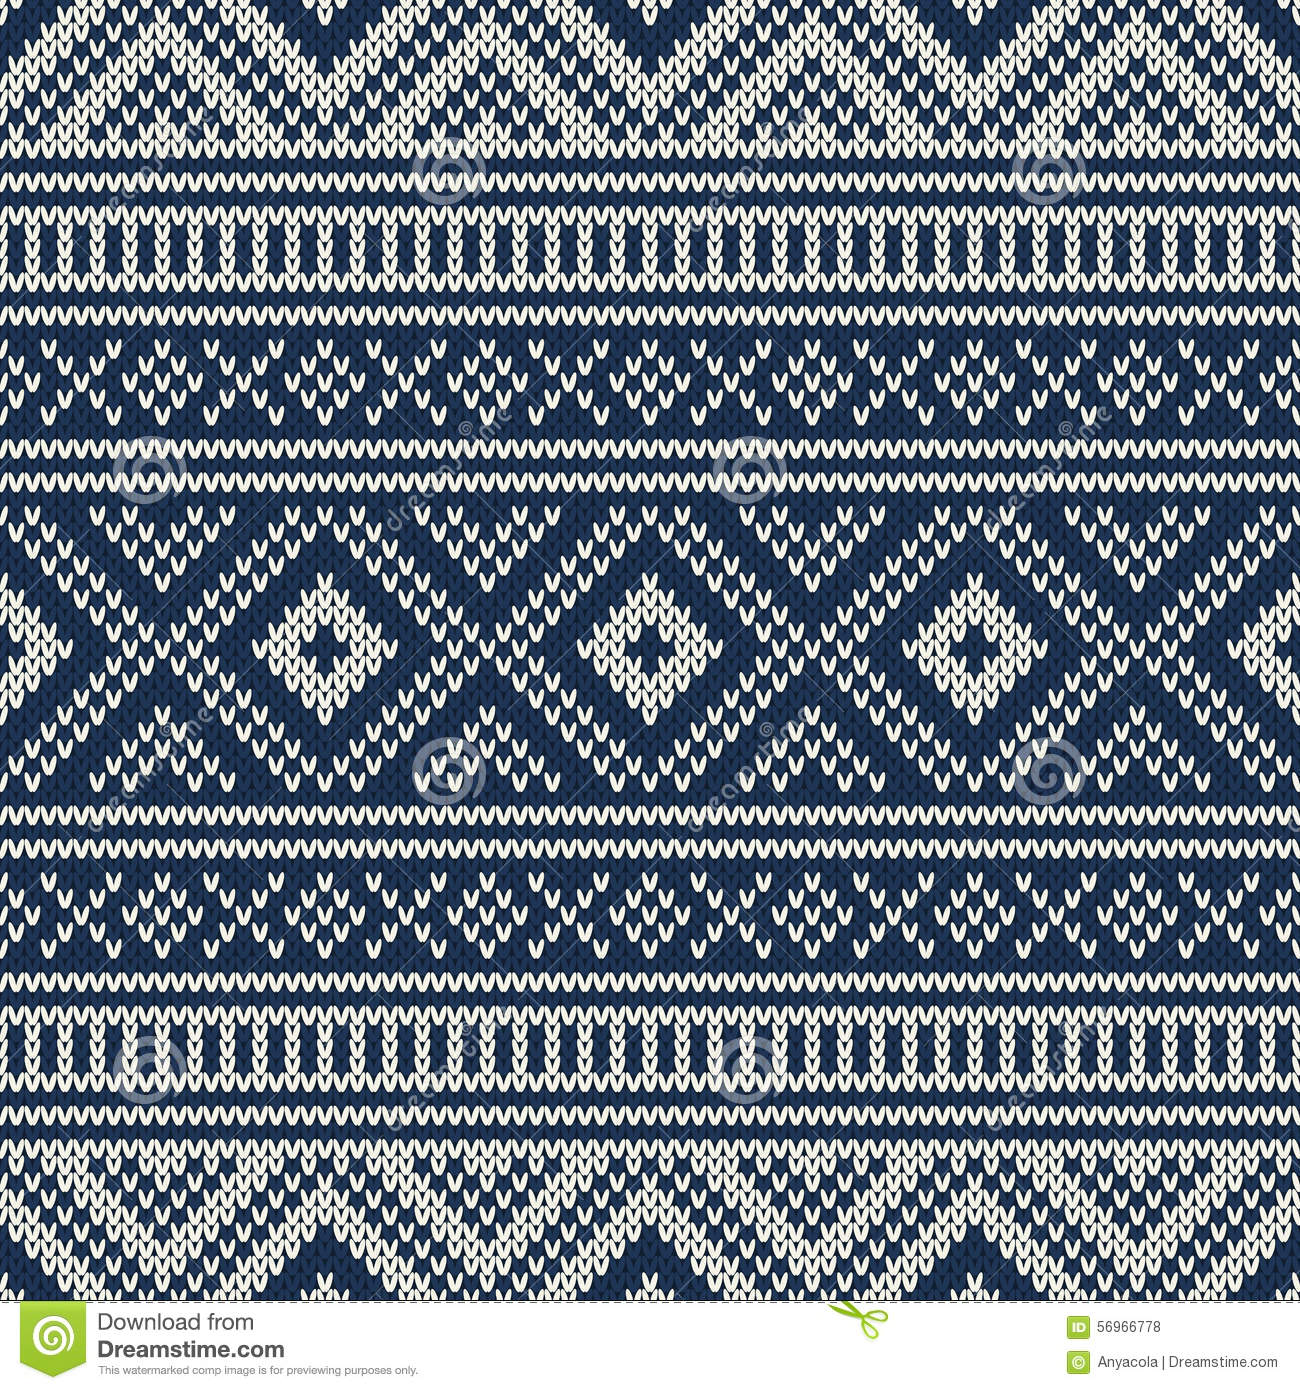 Free Printable Baby Knitting Patterns : Traditional Fair Isle Pattern. Seamless Knitting Ornament Stock Vector - Imag...